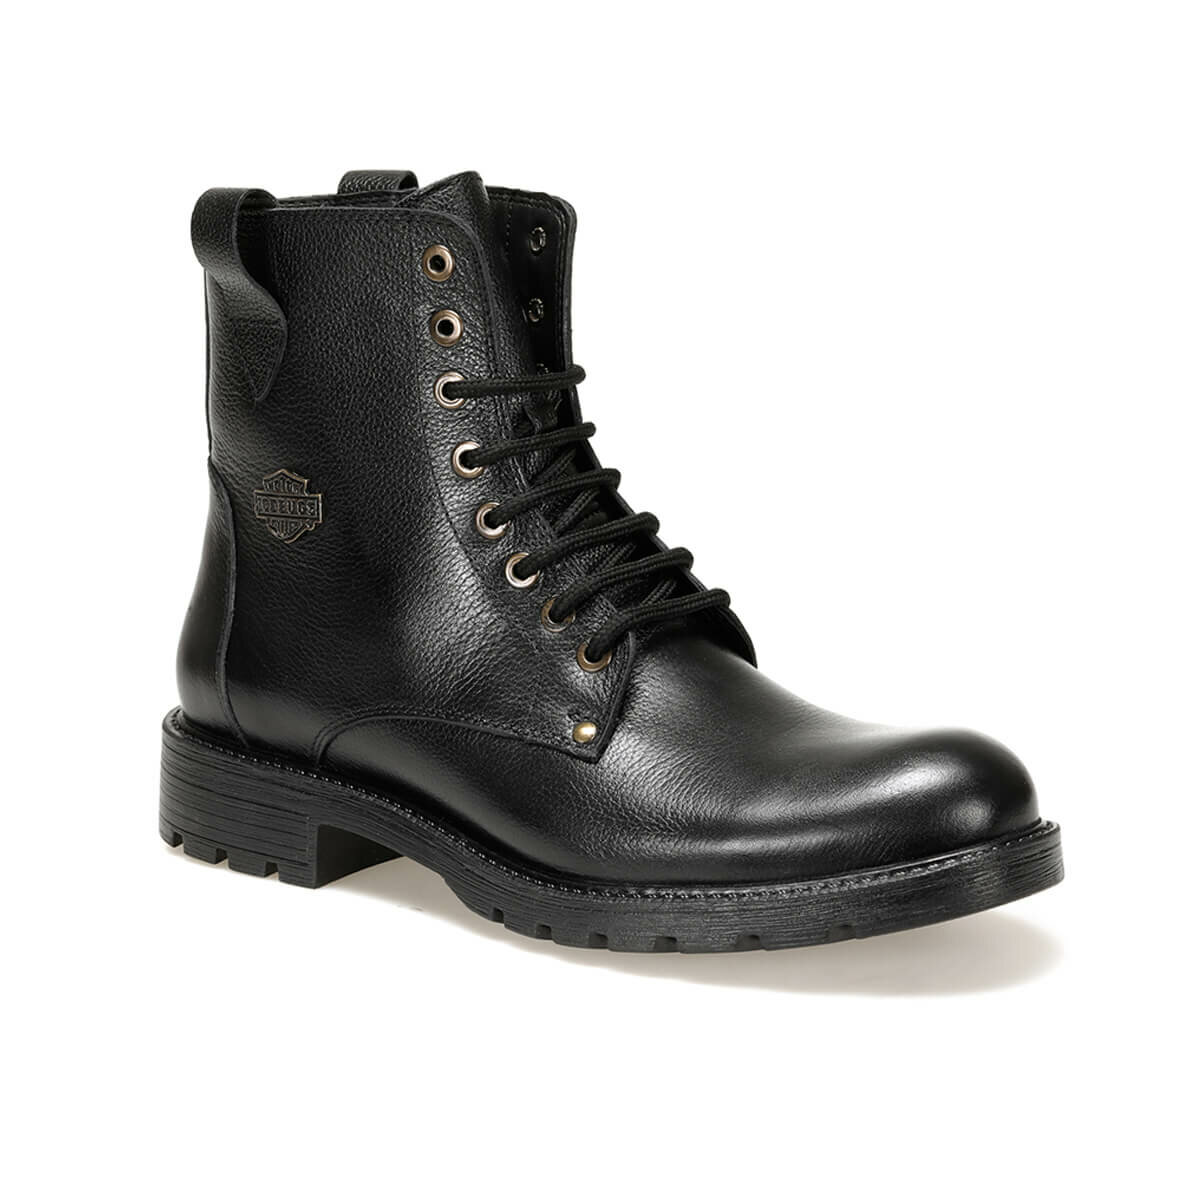 FLO 394 Black Men Boots Oxide